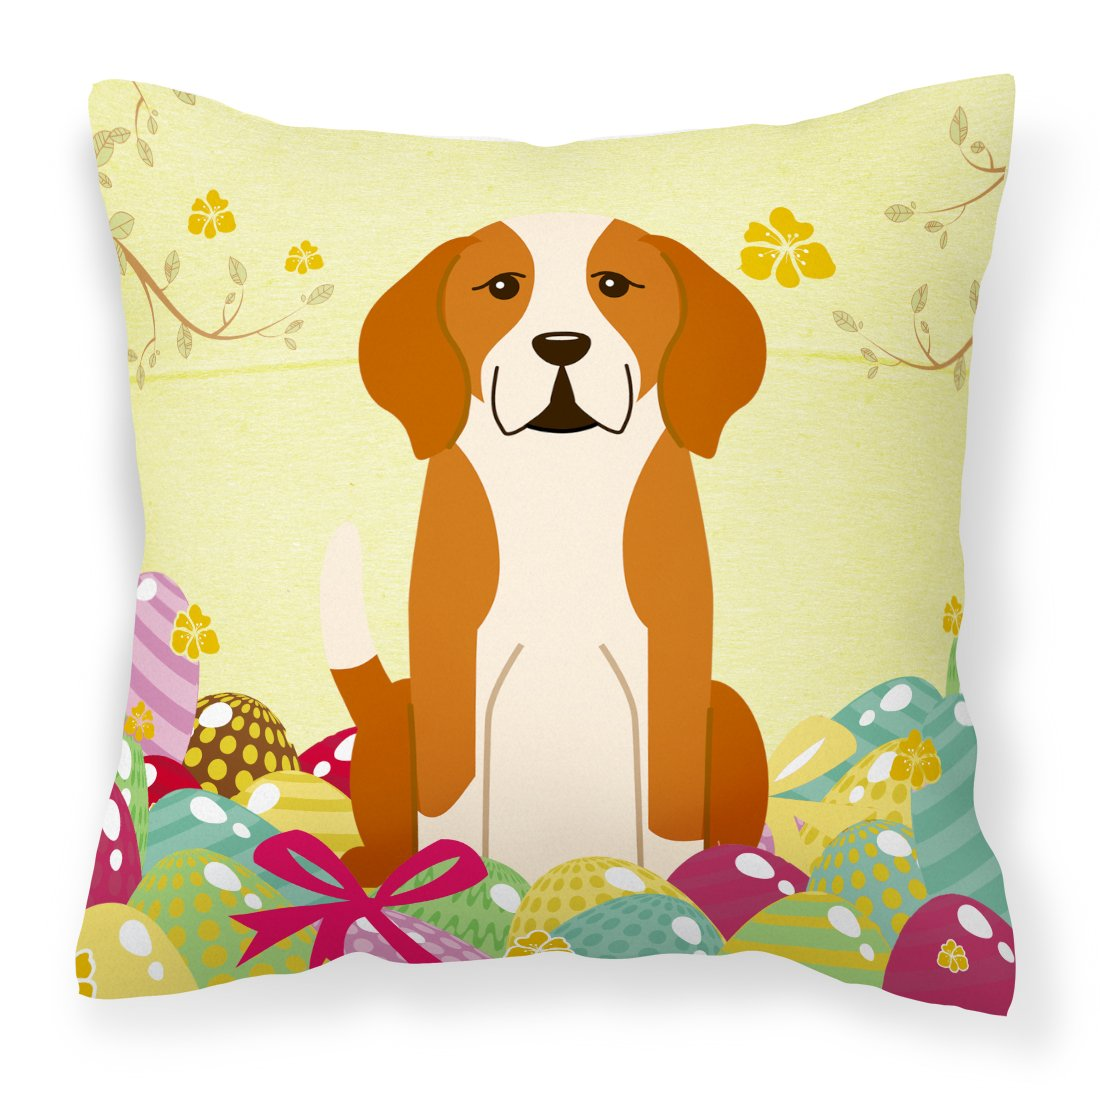 Easter Eggs English Foxhound Fabric Decorative Pillow BB6110PW1818 by Caroline's Treasures